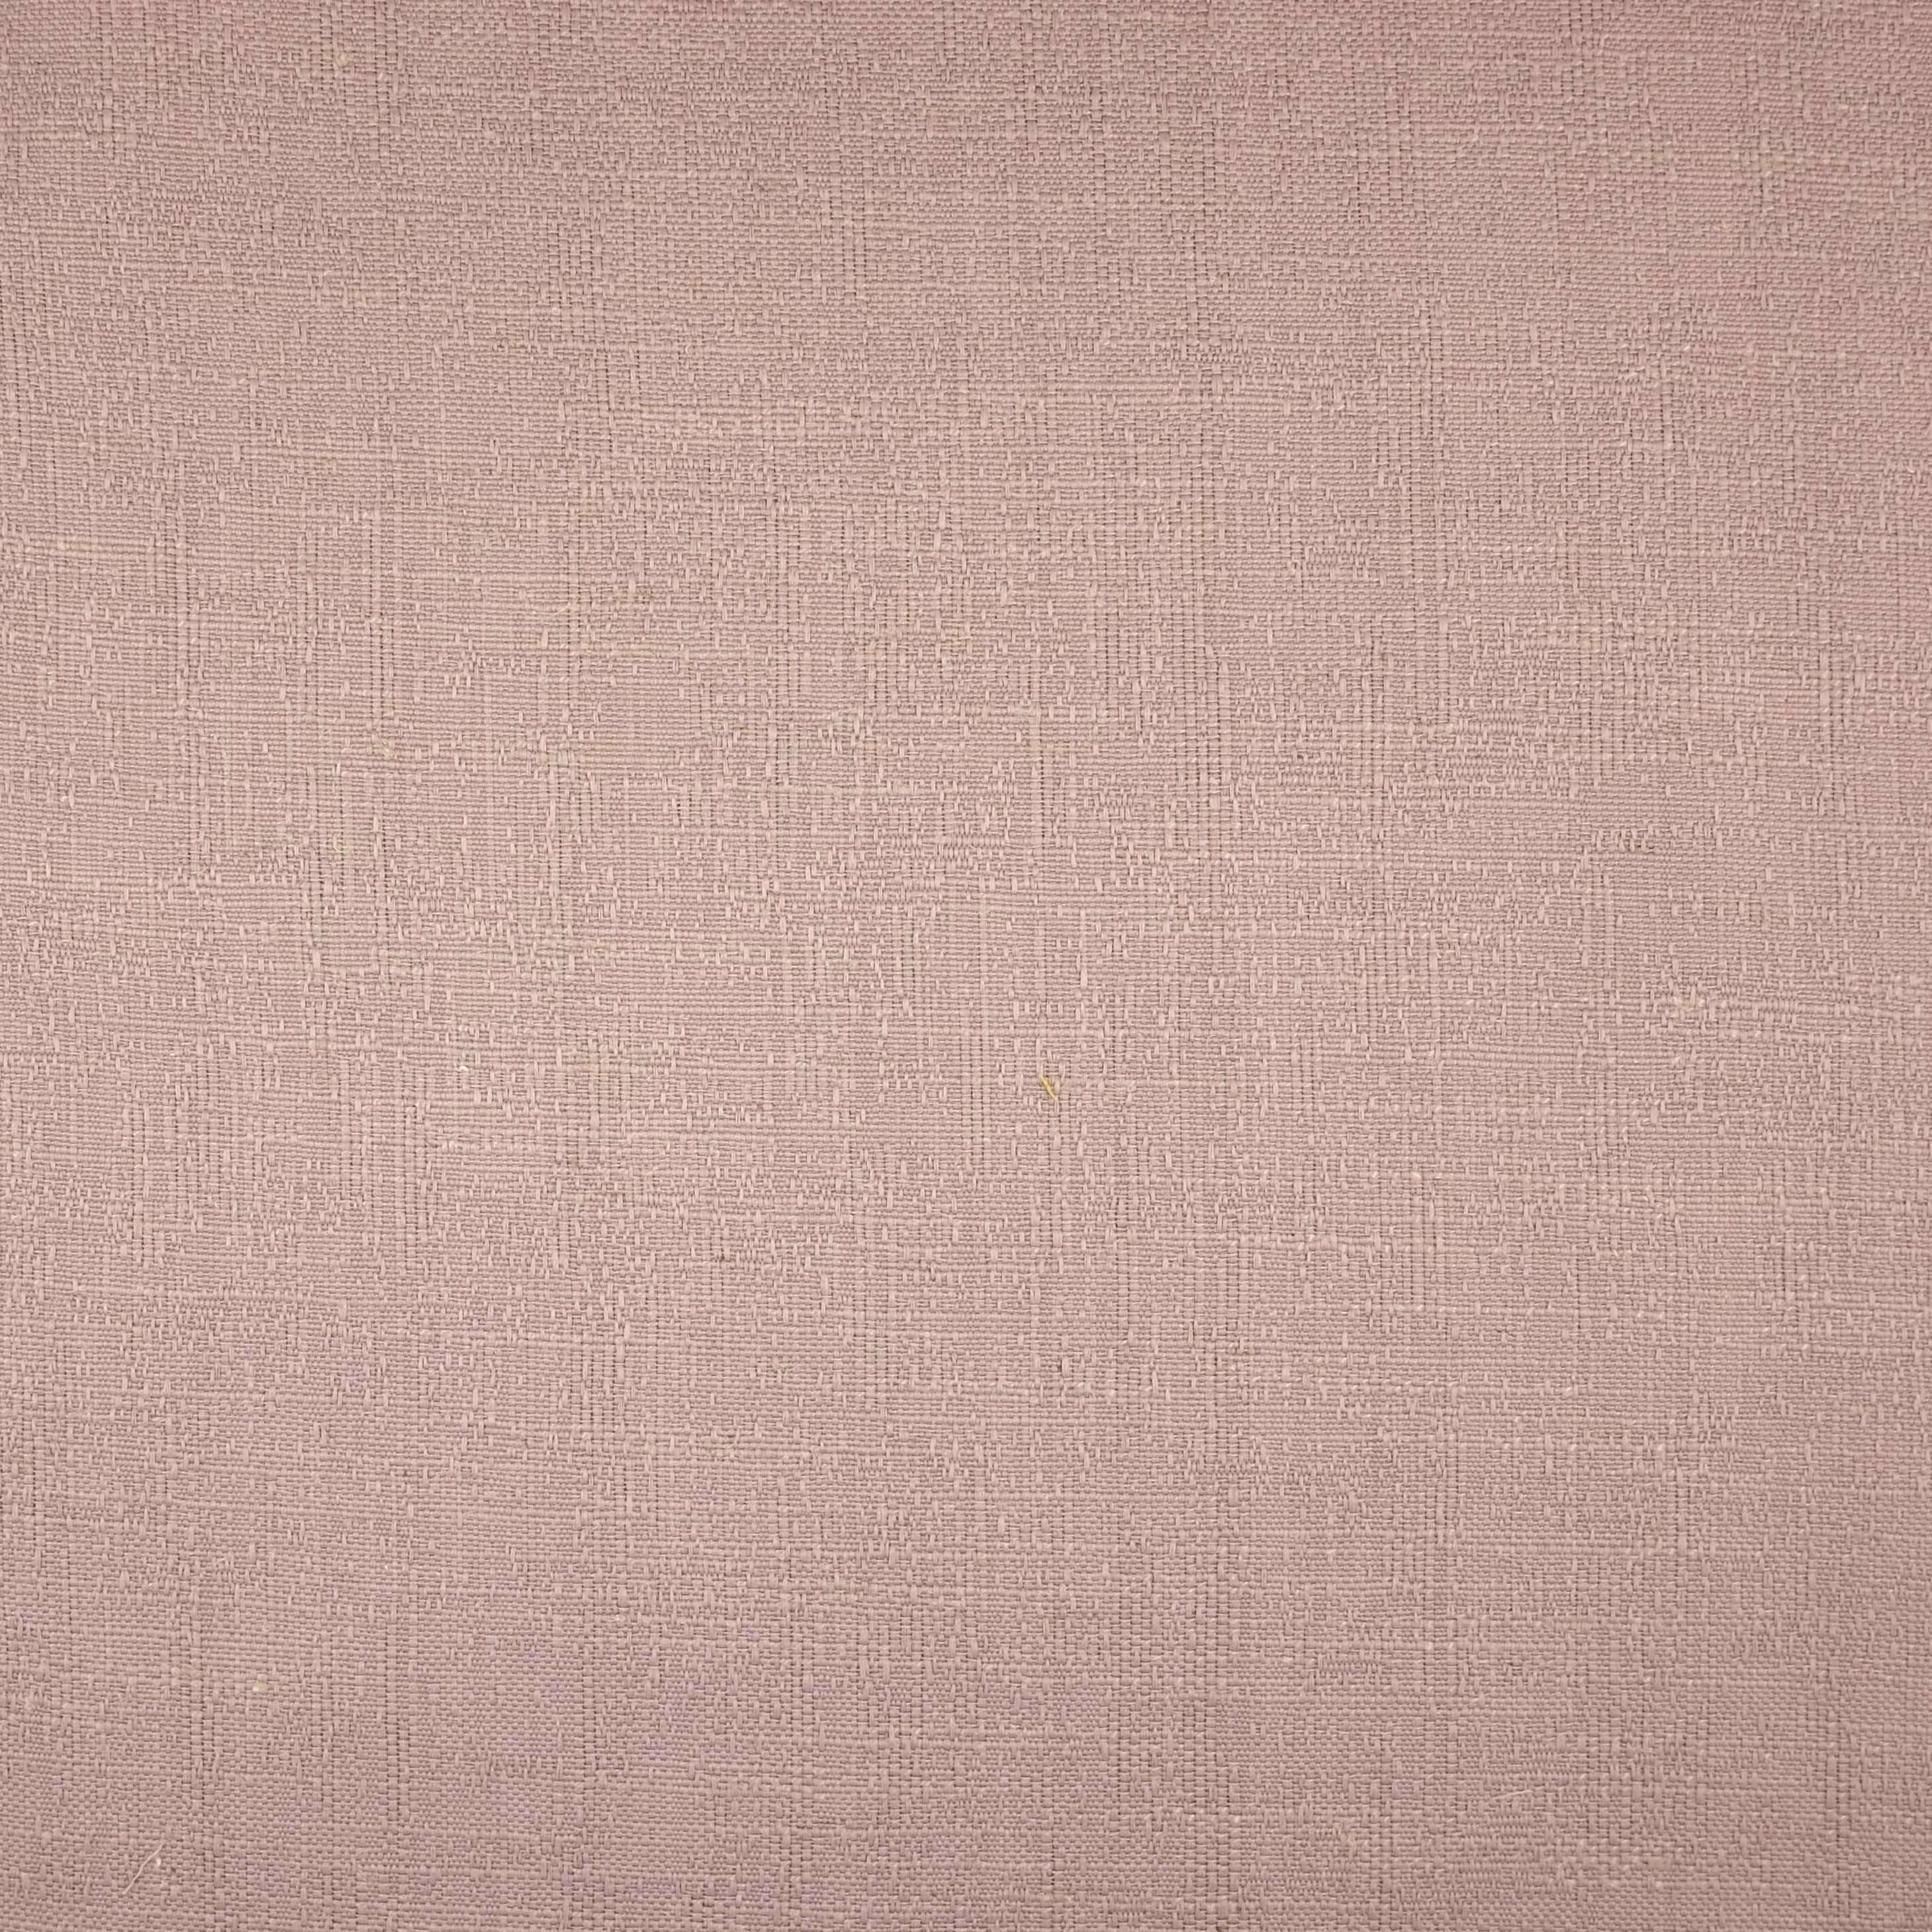 McAlister Textiles Harmony Linen Blend Soft Blush Textured Fabric Fabrics